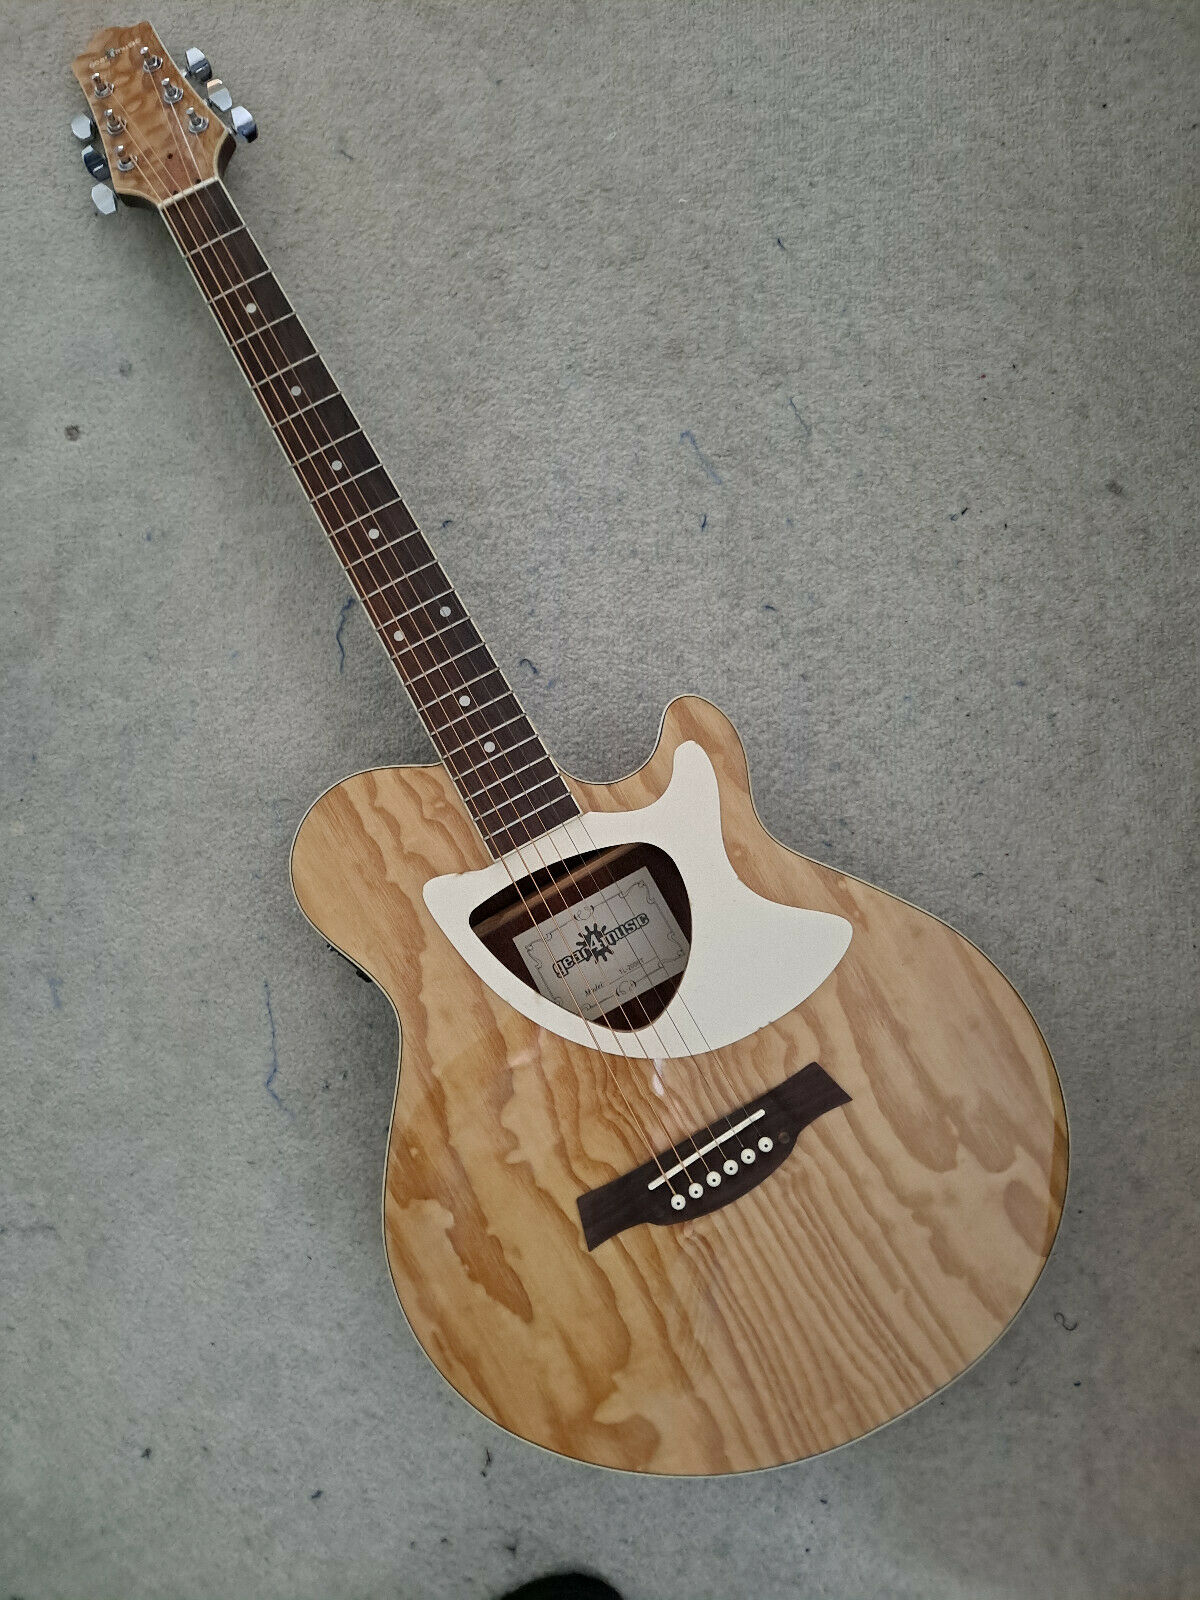 This pre-owned Gear4Music guitar is for sale - Gear4Music Electro Acoustic Guitar